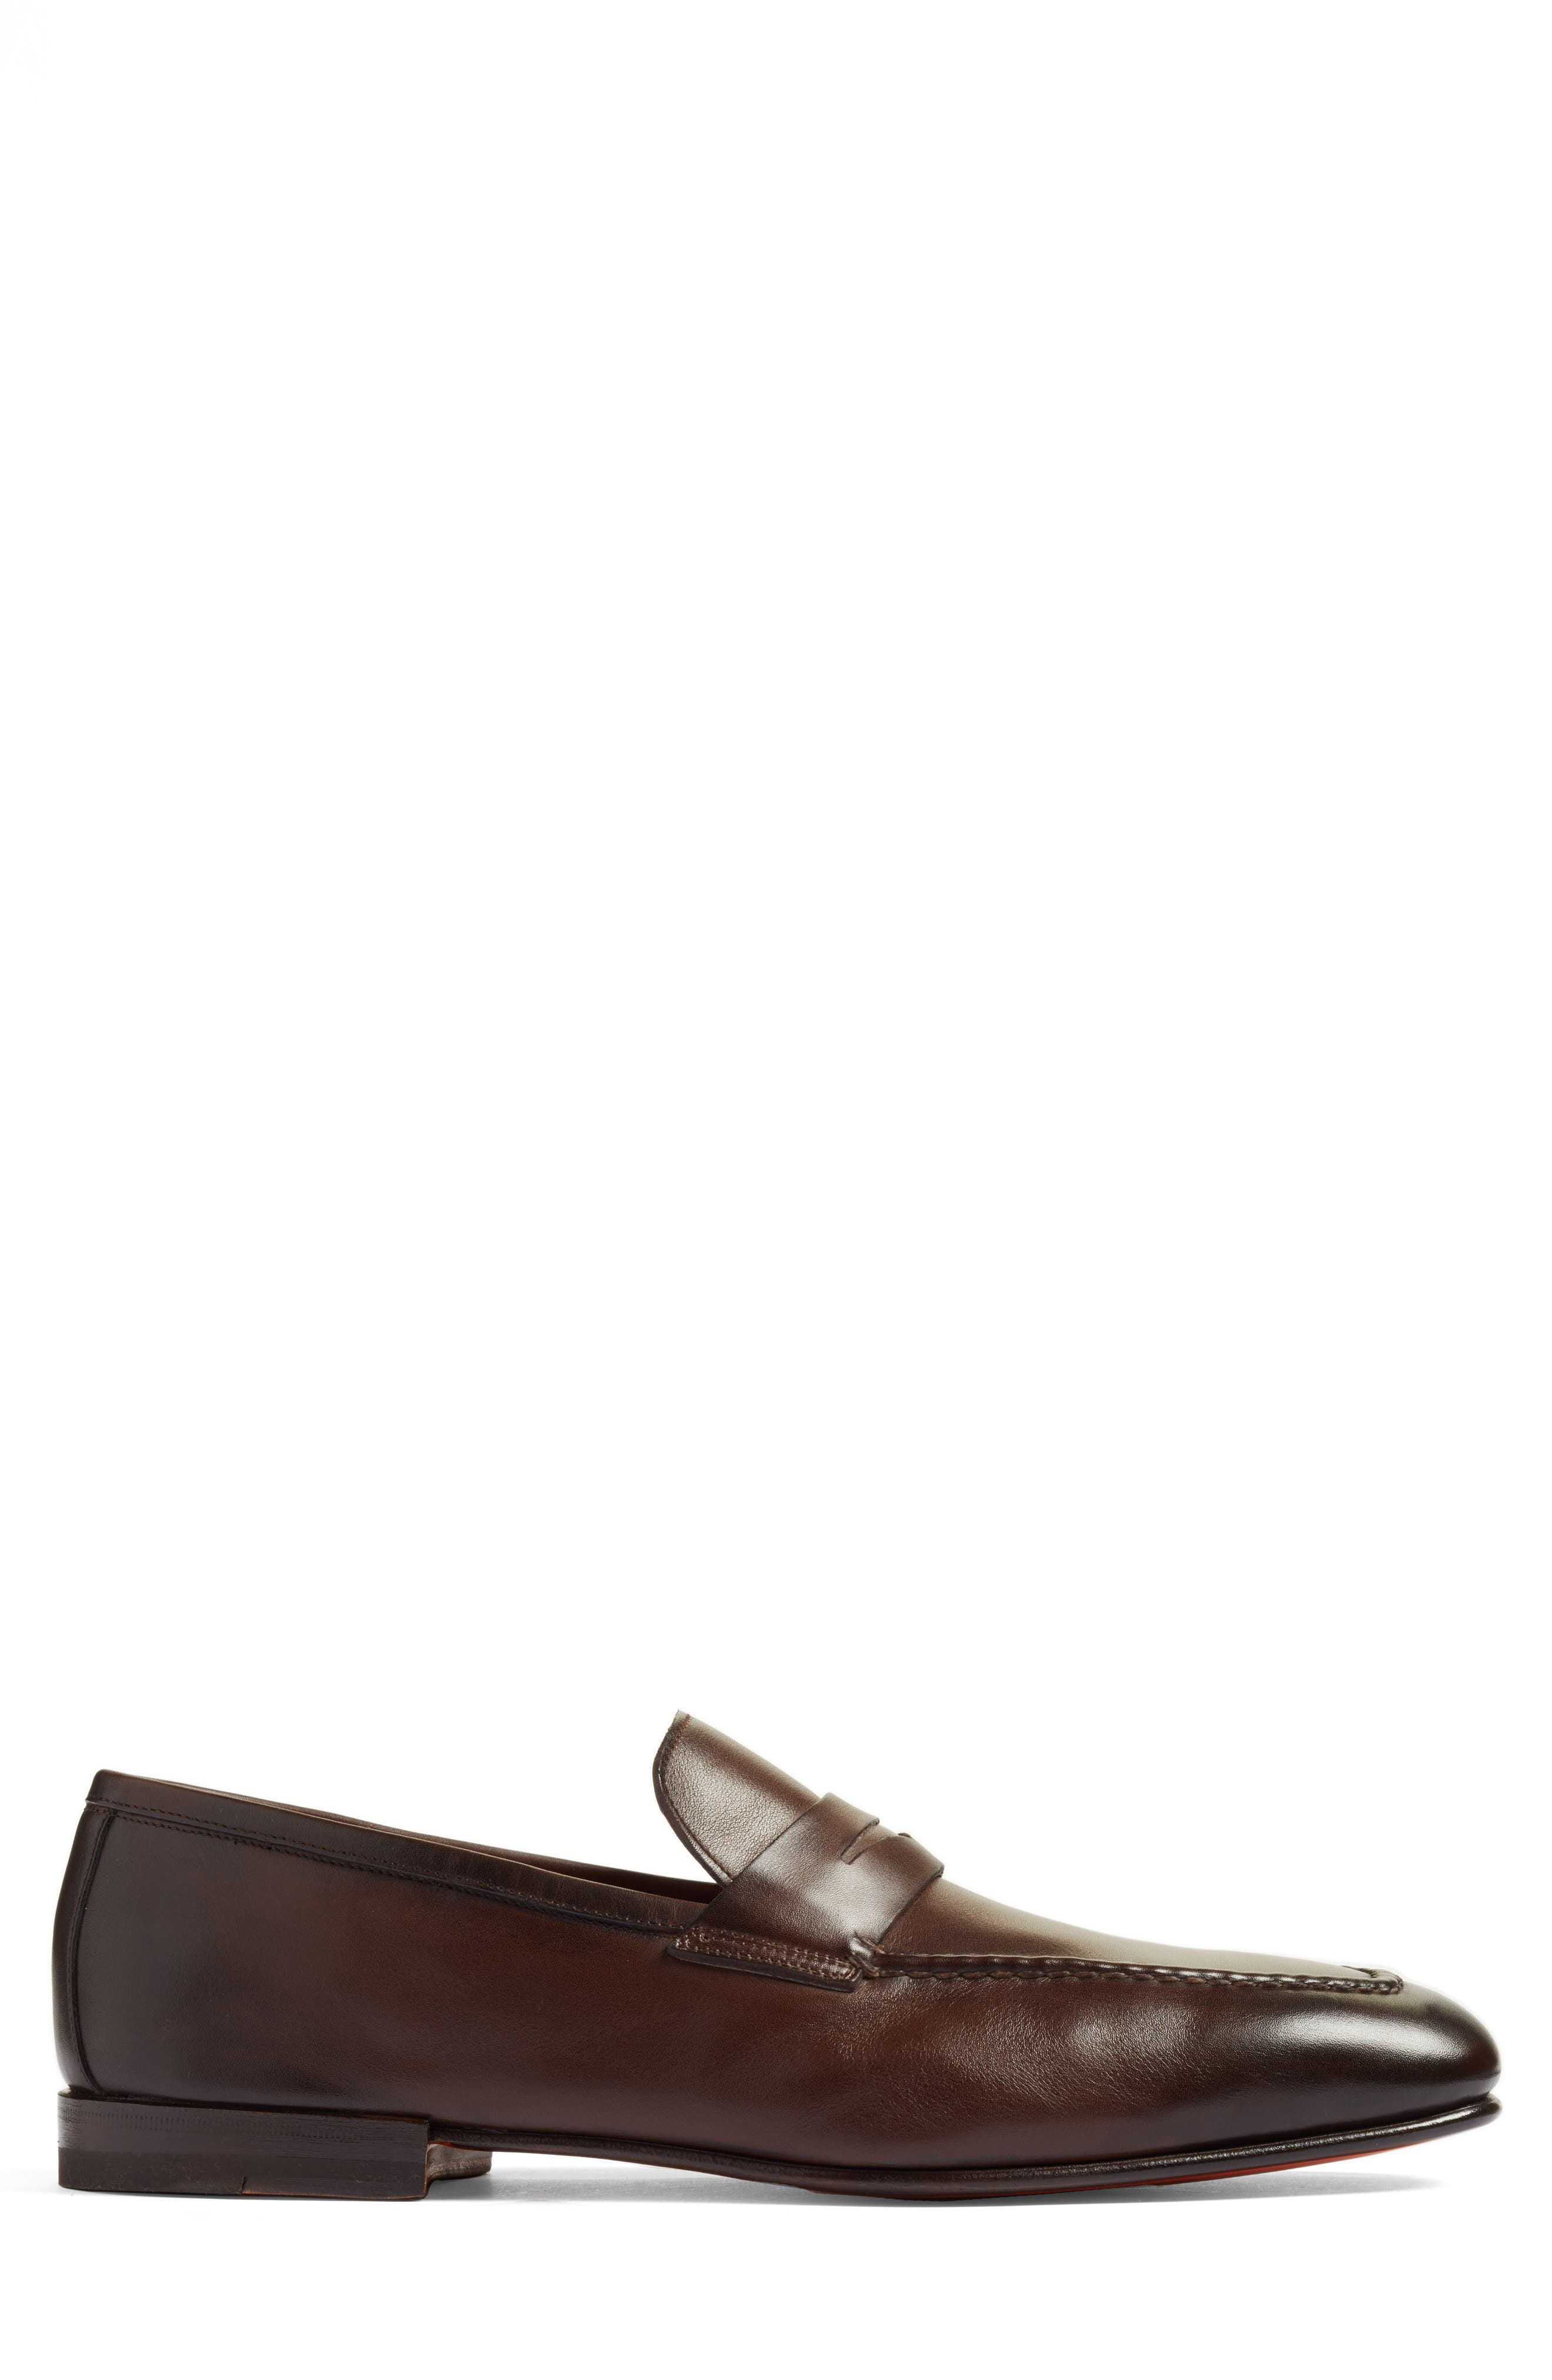 SANTONI, Fox Packable Penny Loafer, Alternate thumbnail 3, color, DARK BROWN LEATHER